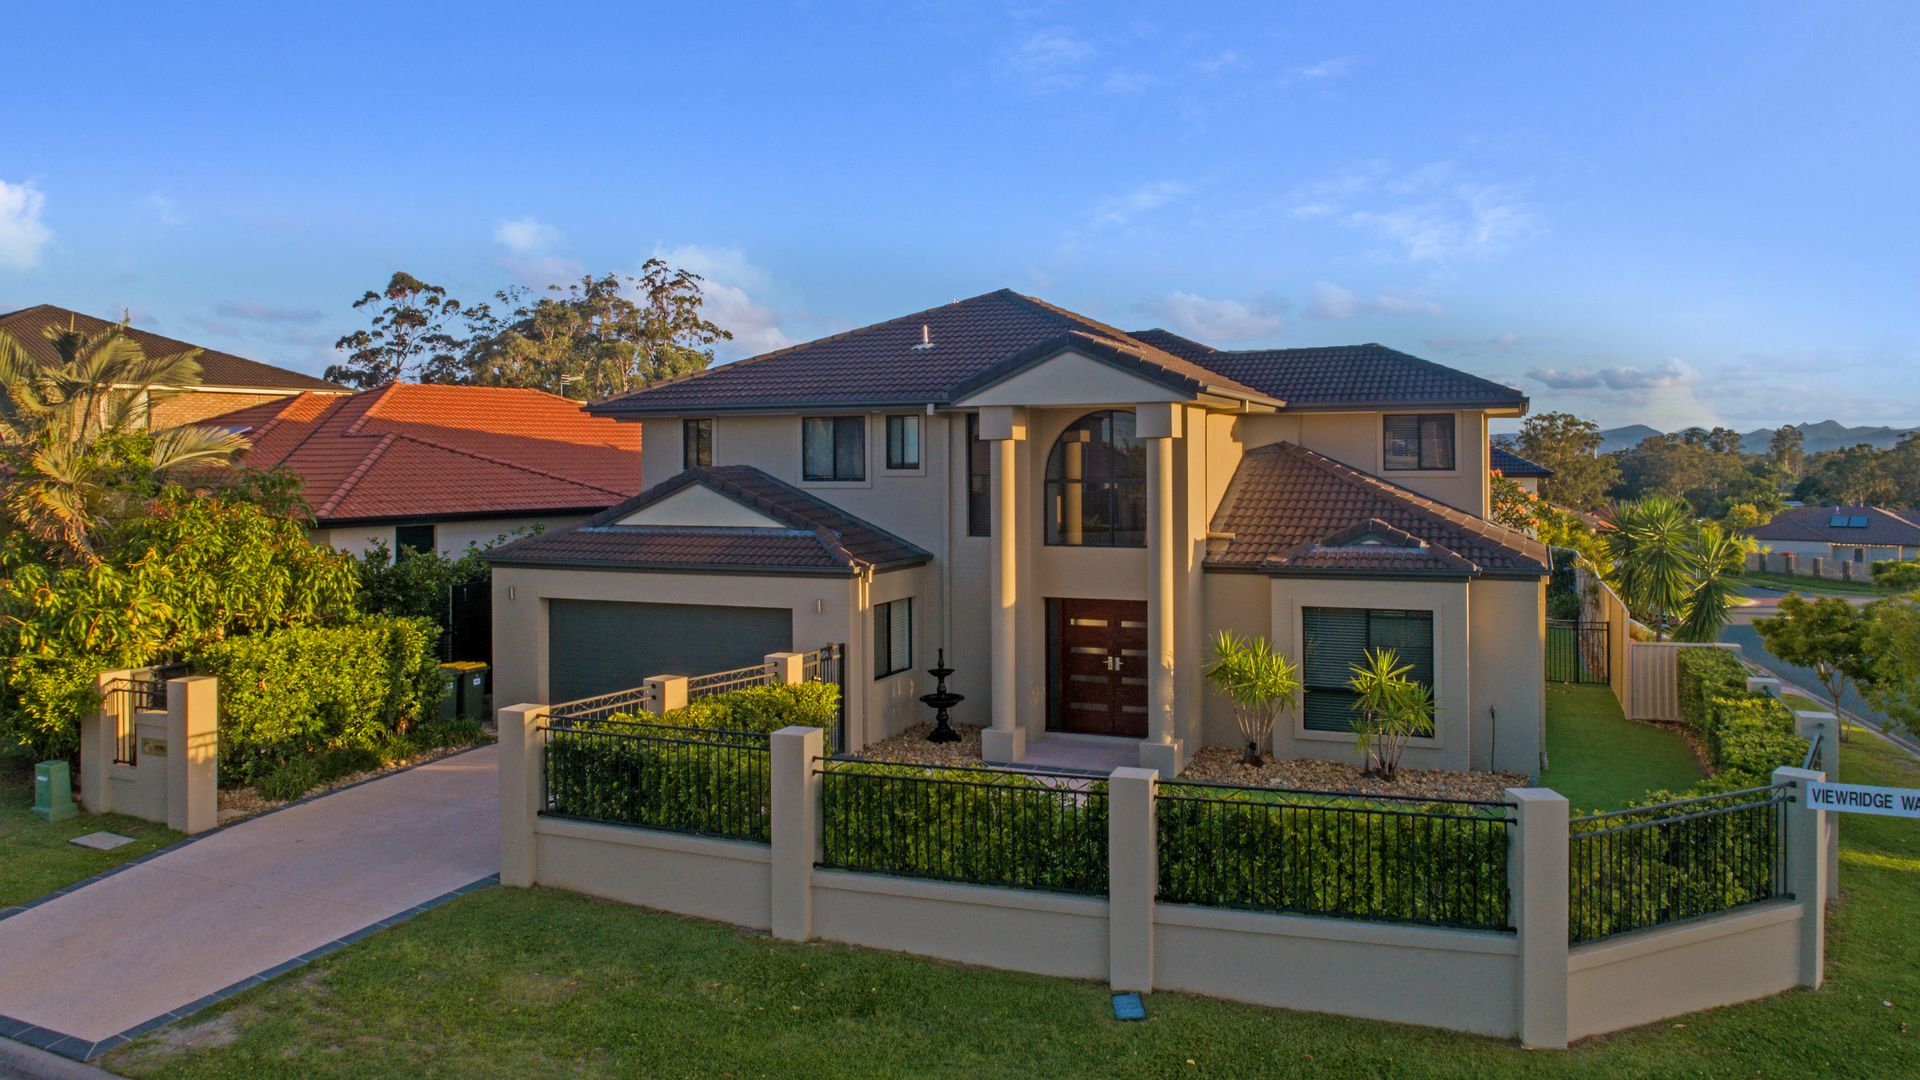 1 Viewridge Way, Molendinar QLD 4214, Image 2